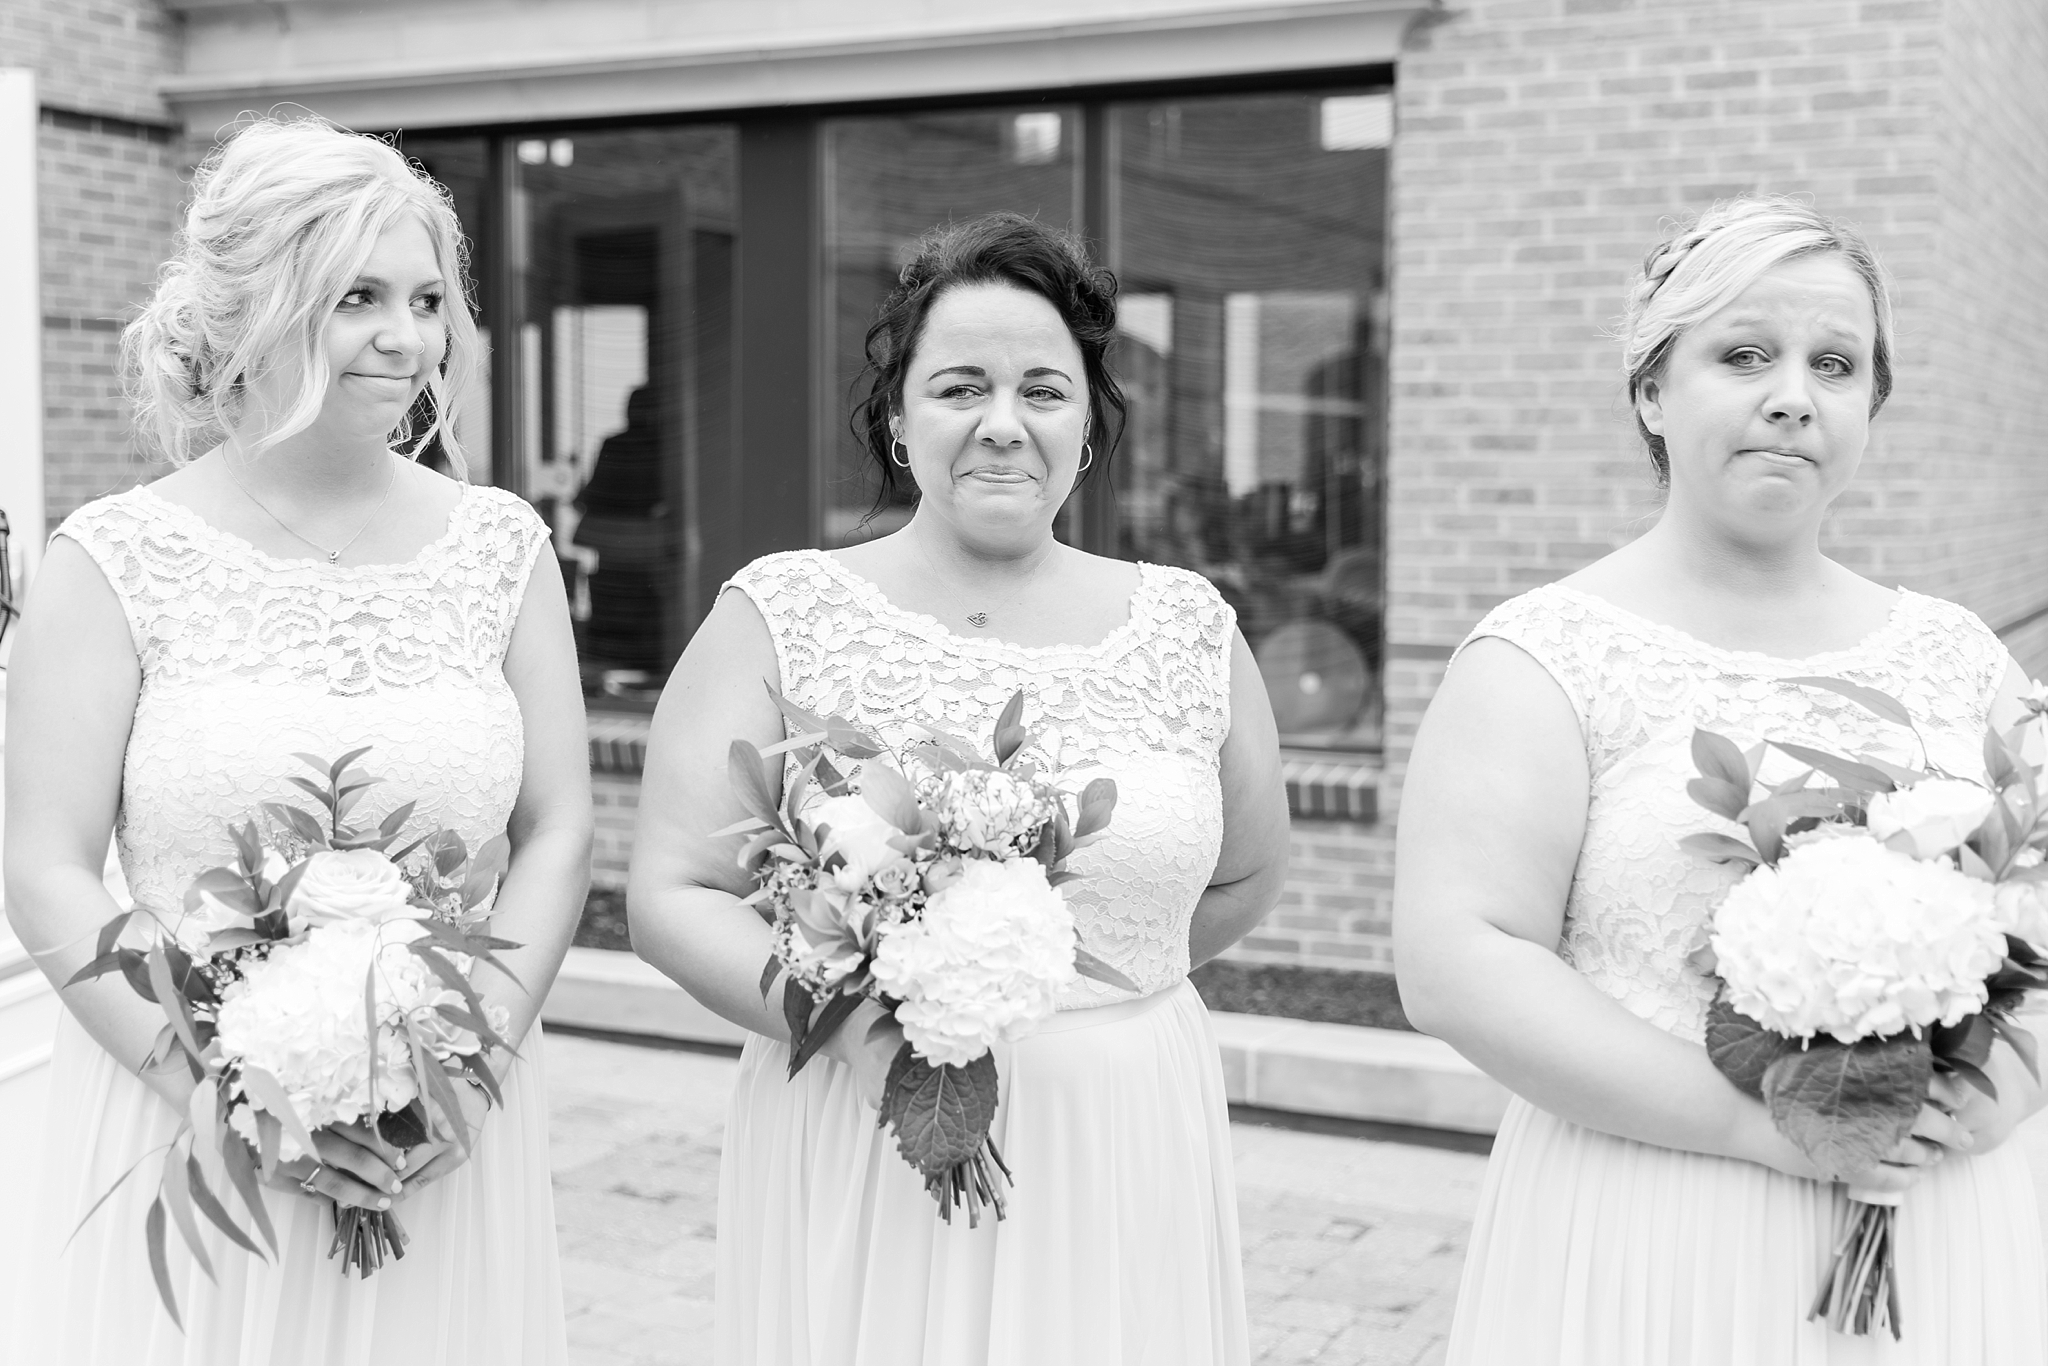 candid-romantic-wedding-photos-at-the-h-hotel-in-midland-michigan-by-courtney-carolyn-photography_0065.jpg